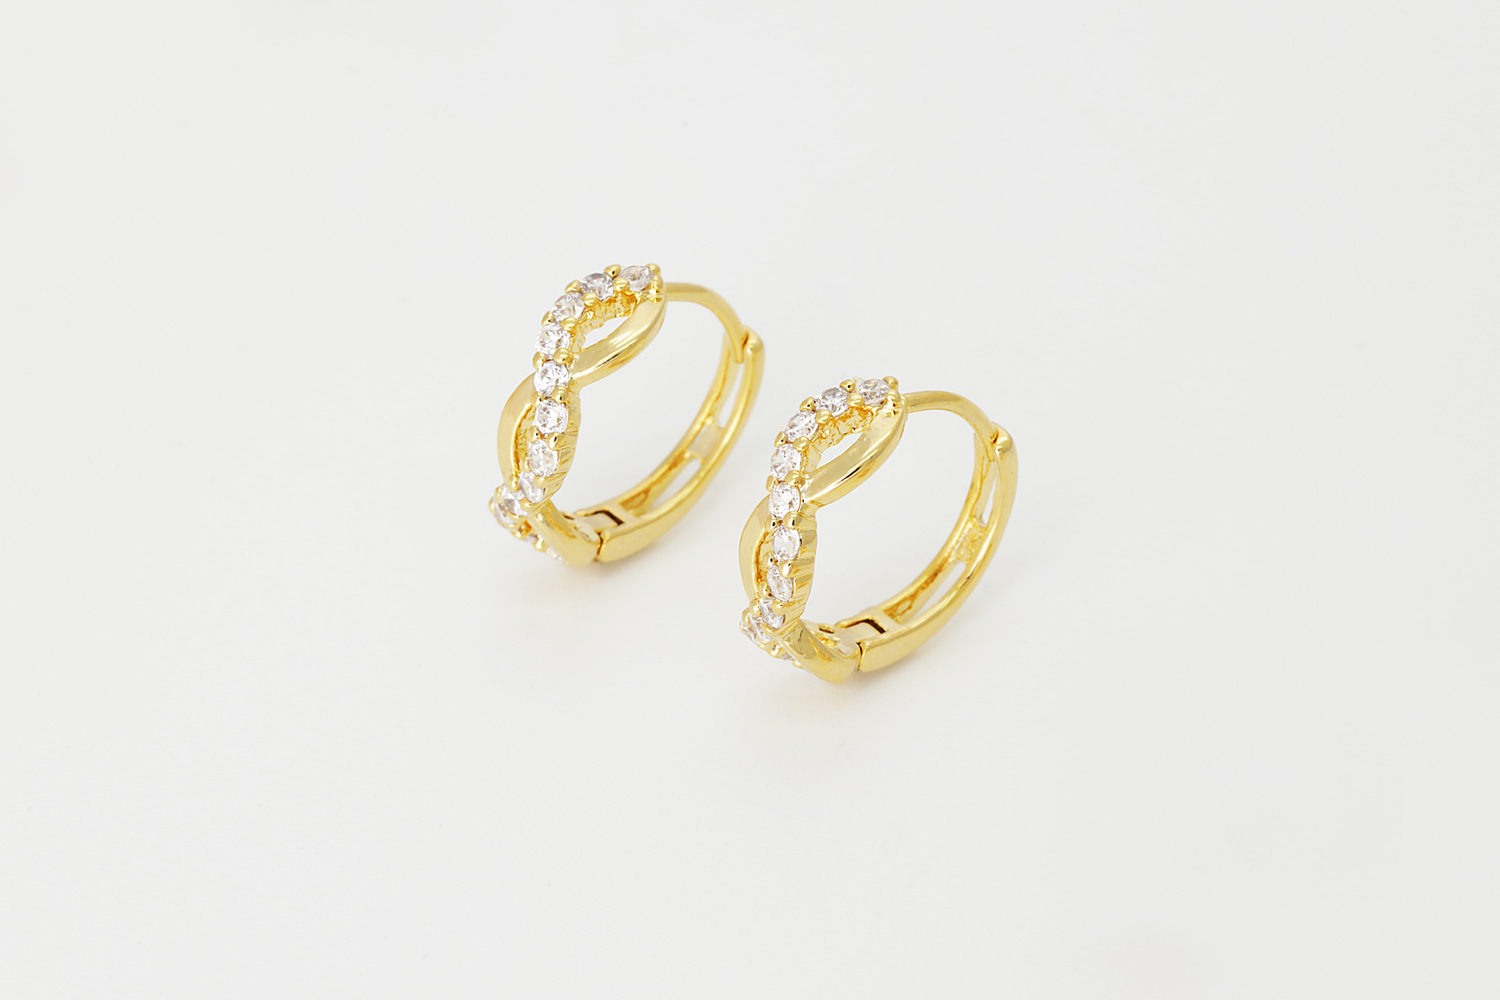 [T68-P6] Waving cubic lever back earring, Brass, CZ, Nickel free, Hoop earrings, Handmade jewelry, Fashion jewelry